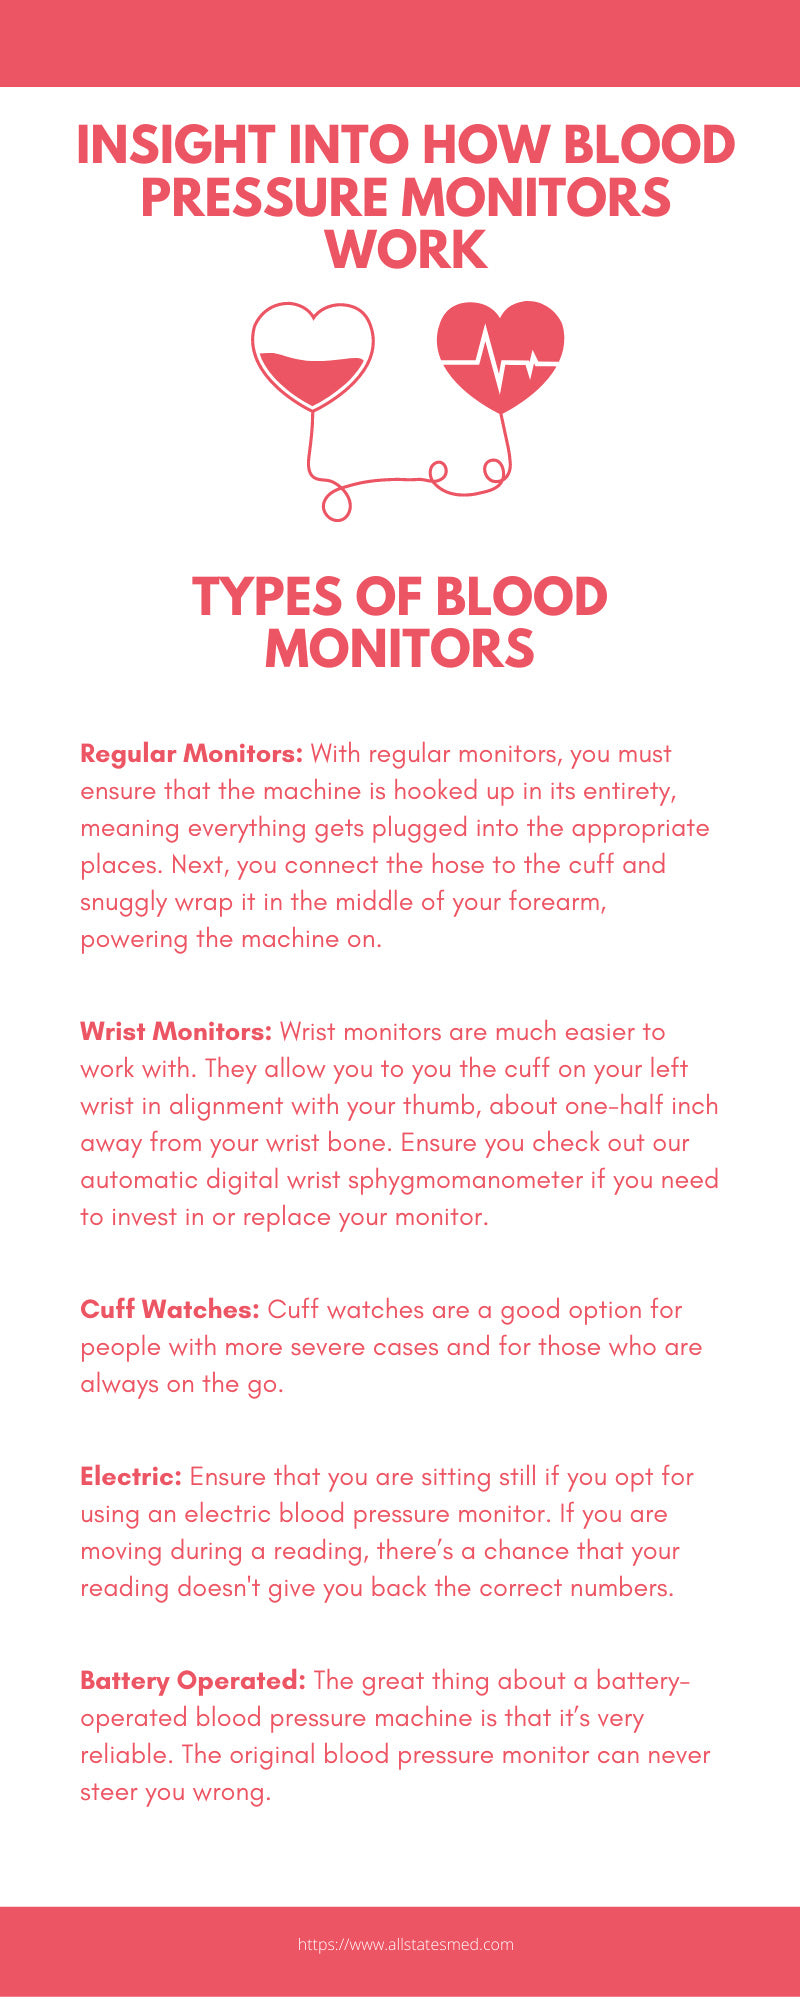 Insight Into How Blood Pressure Monitors Work